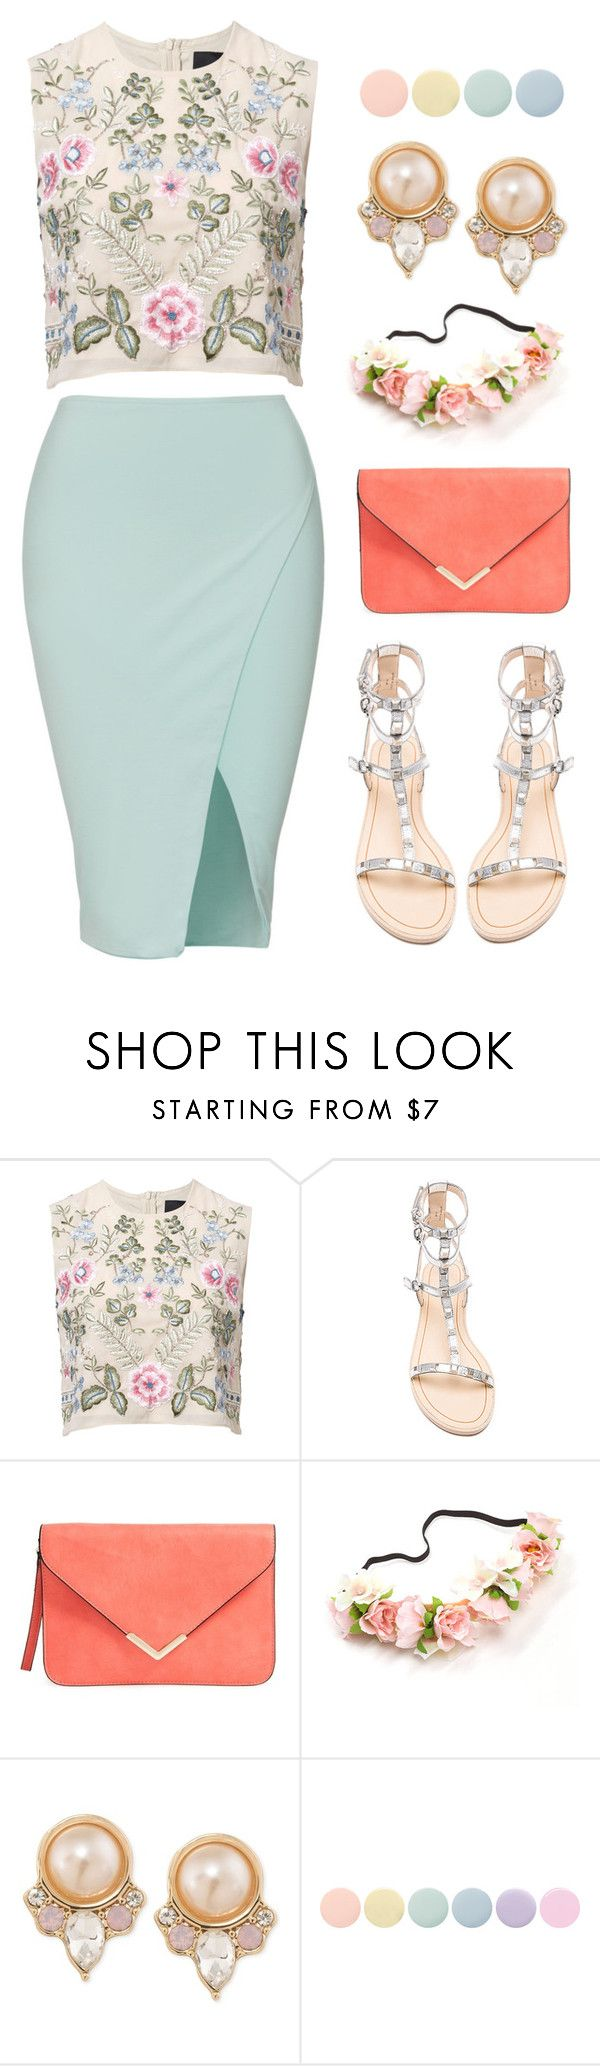 """""""Candy crush."""" by orpitaazmiri ❤ liked on Polyvore featuring Needle & Thread, Rebecca Minkoff, Carolee and Deborah Lippmann"""